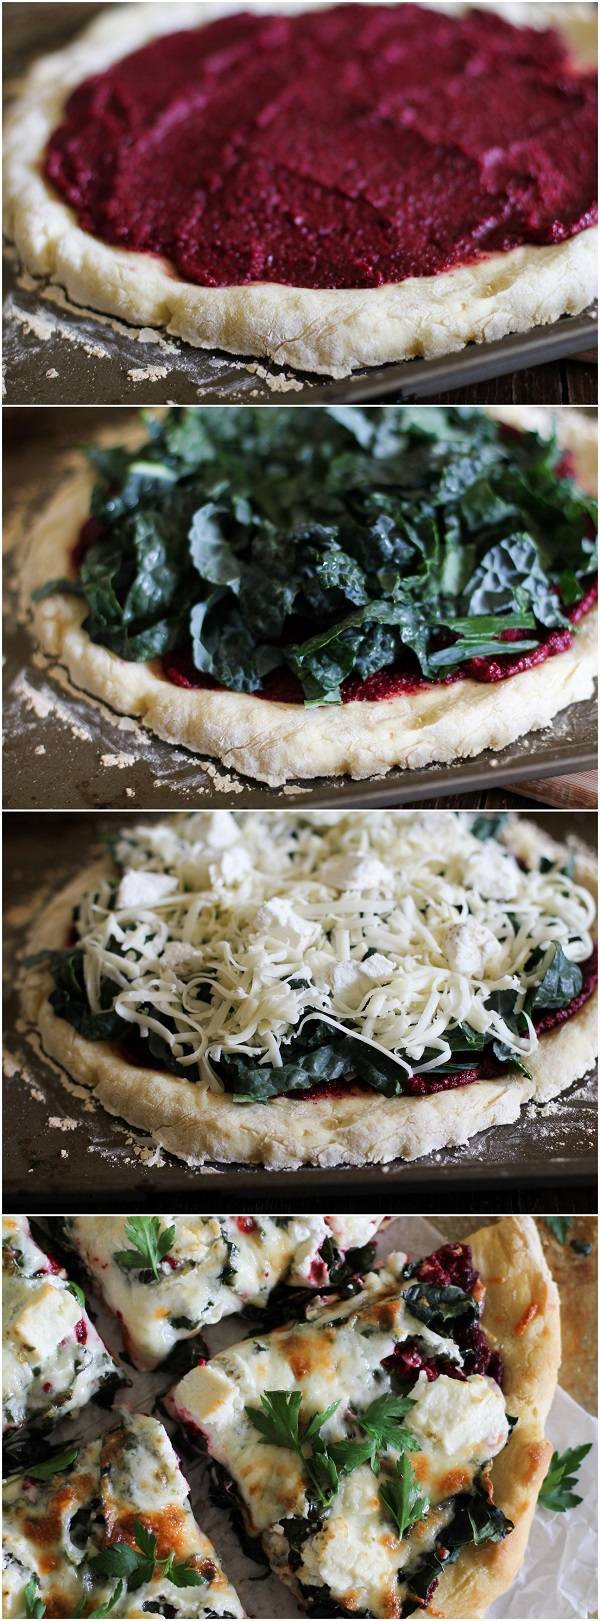 How to make Beet Pesto Pizza with Kale and Goat Cheese